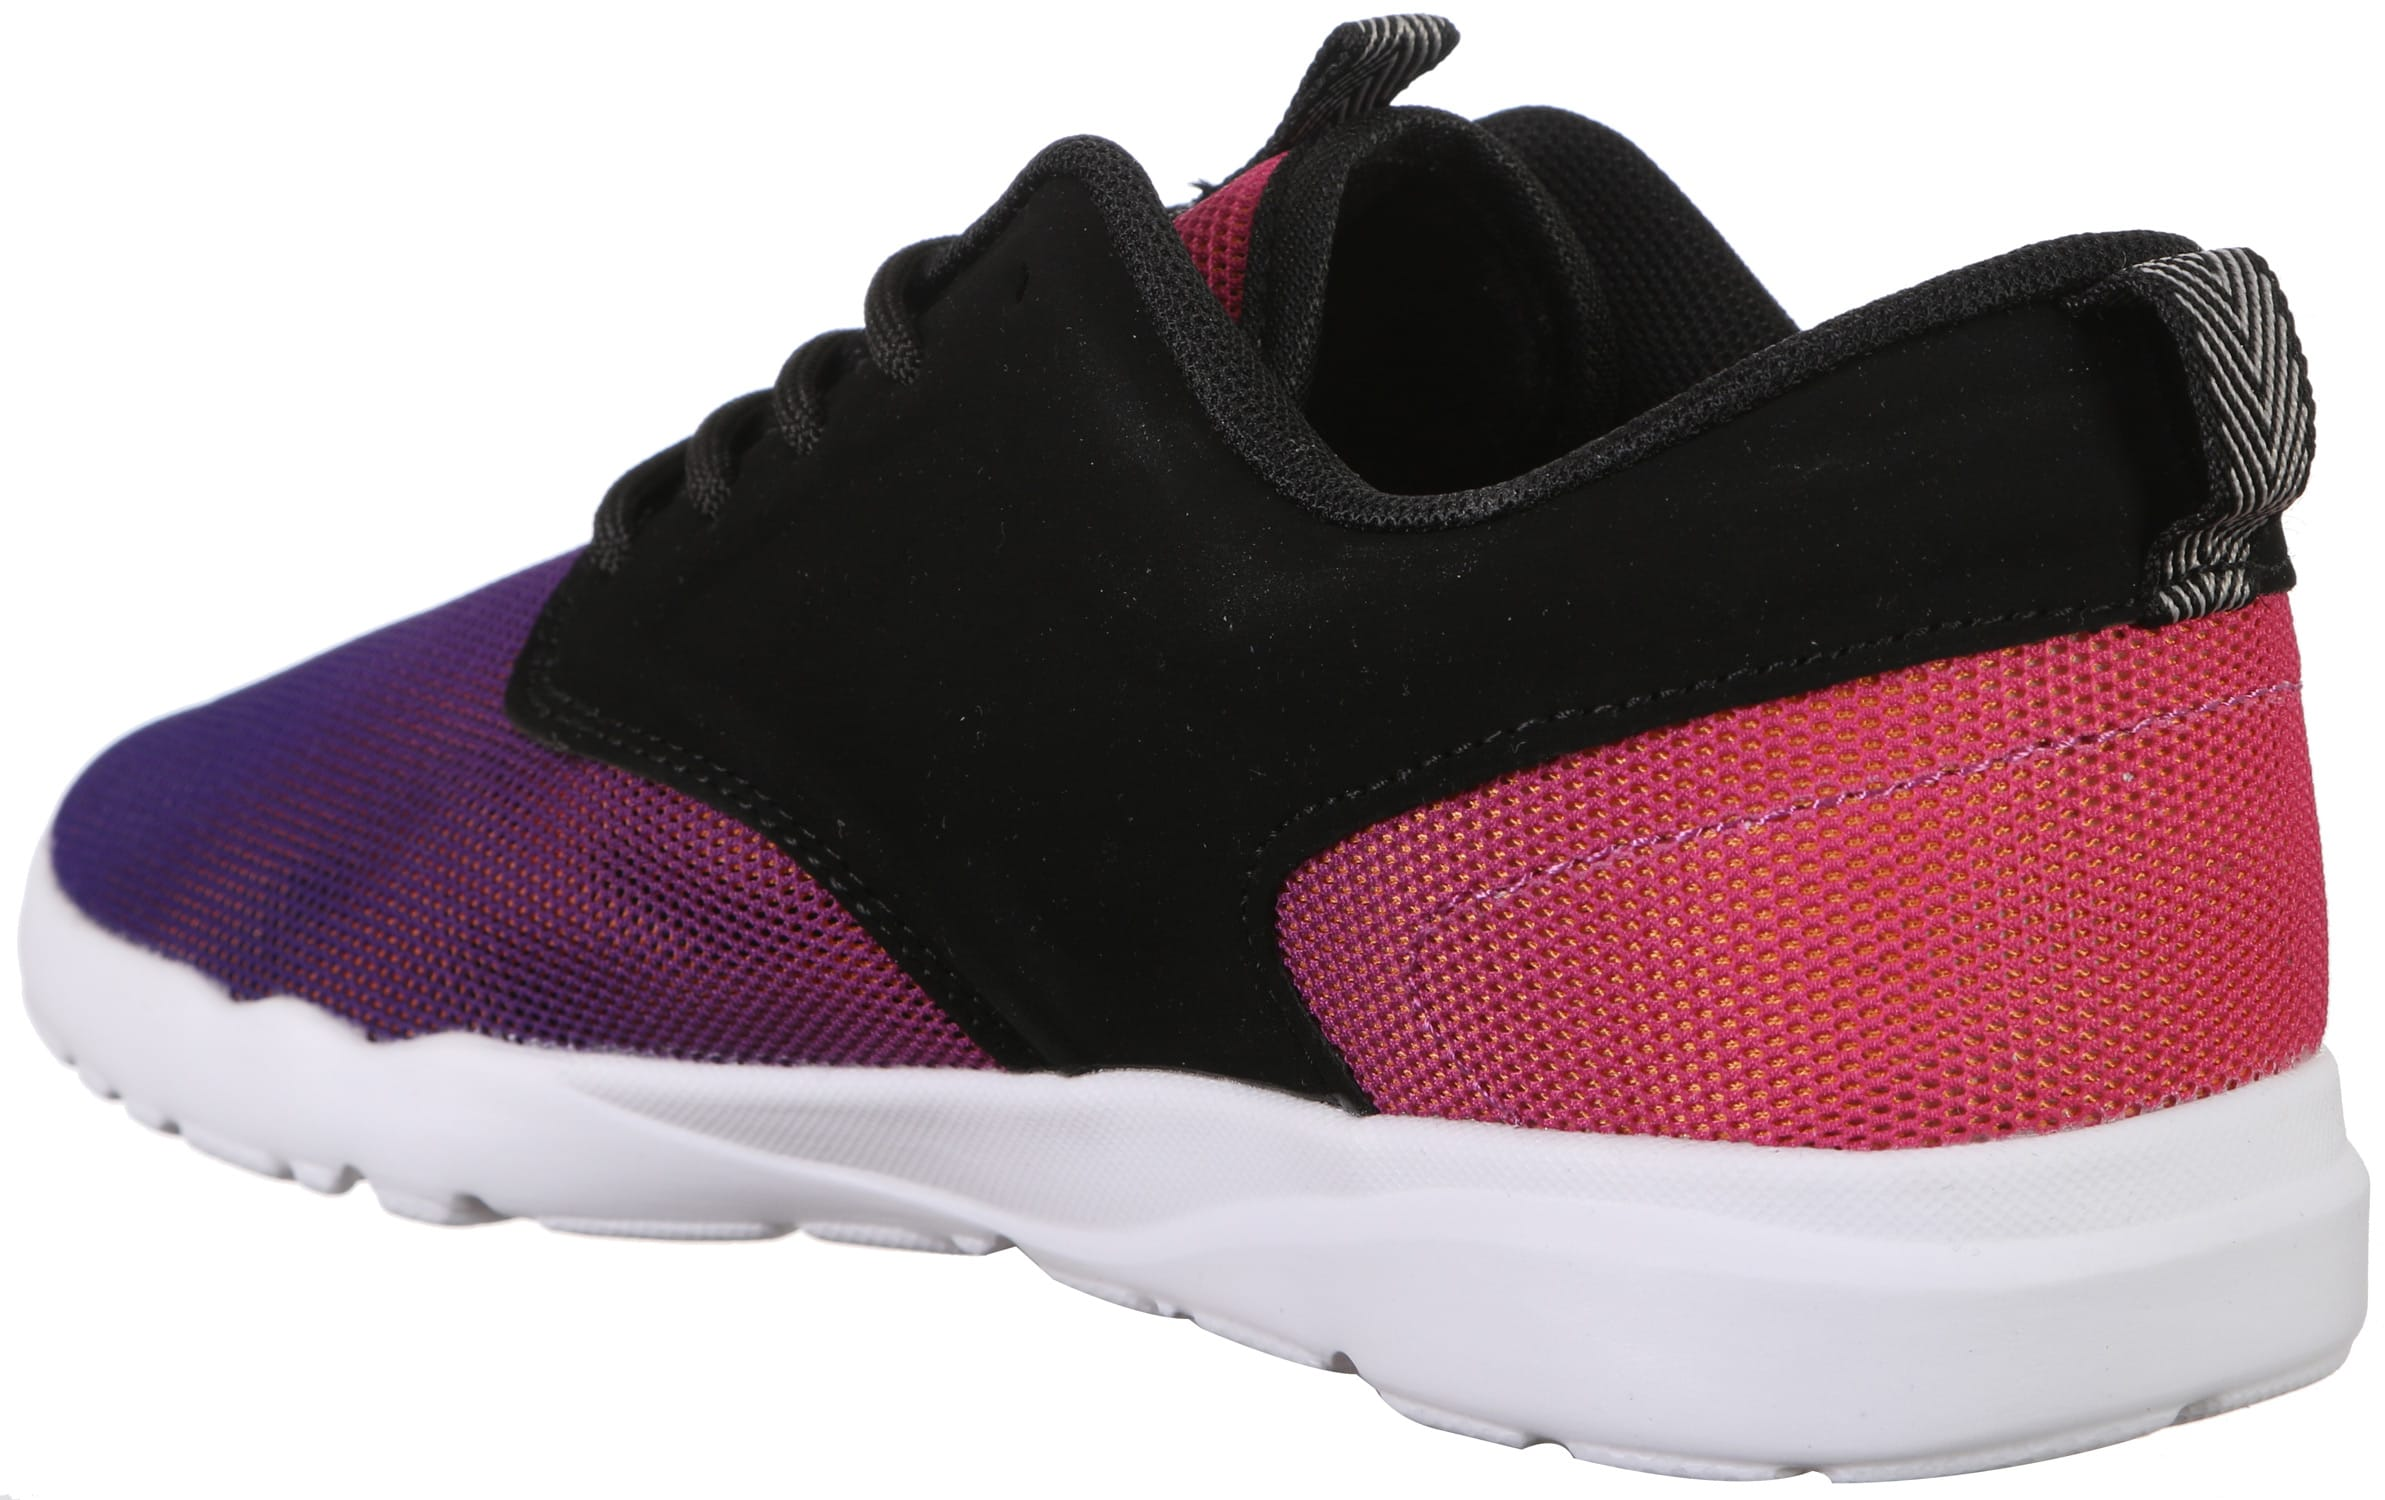 DVS Black Moire Mesh Premier 2.0 Womens Low Top Shoe US 8. About this  product. Picture 1 of 4; Picture 2 of 4; Picture 3 of 4 ...